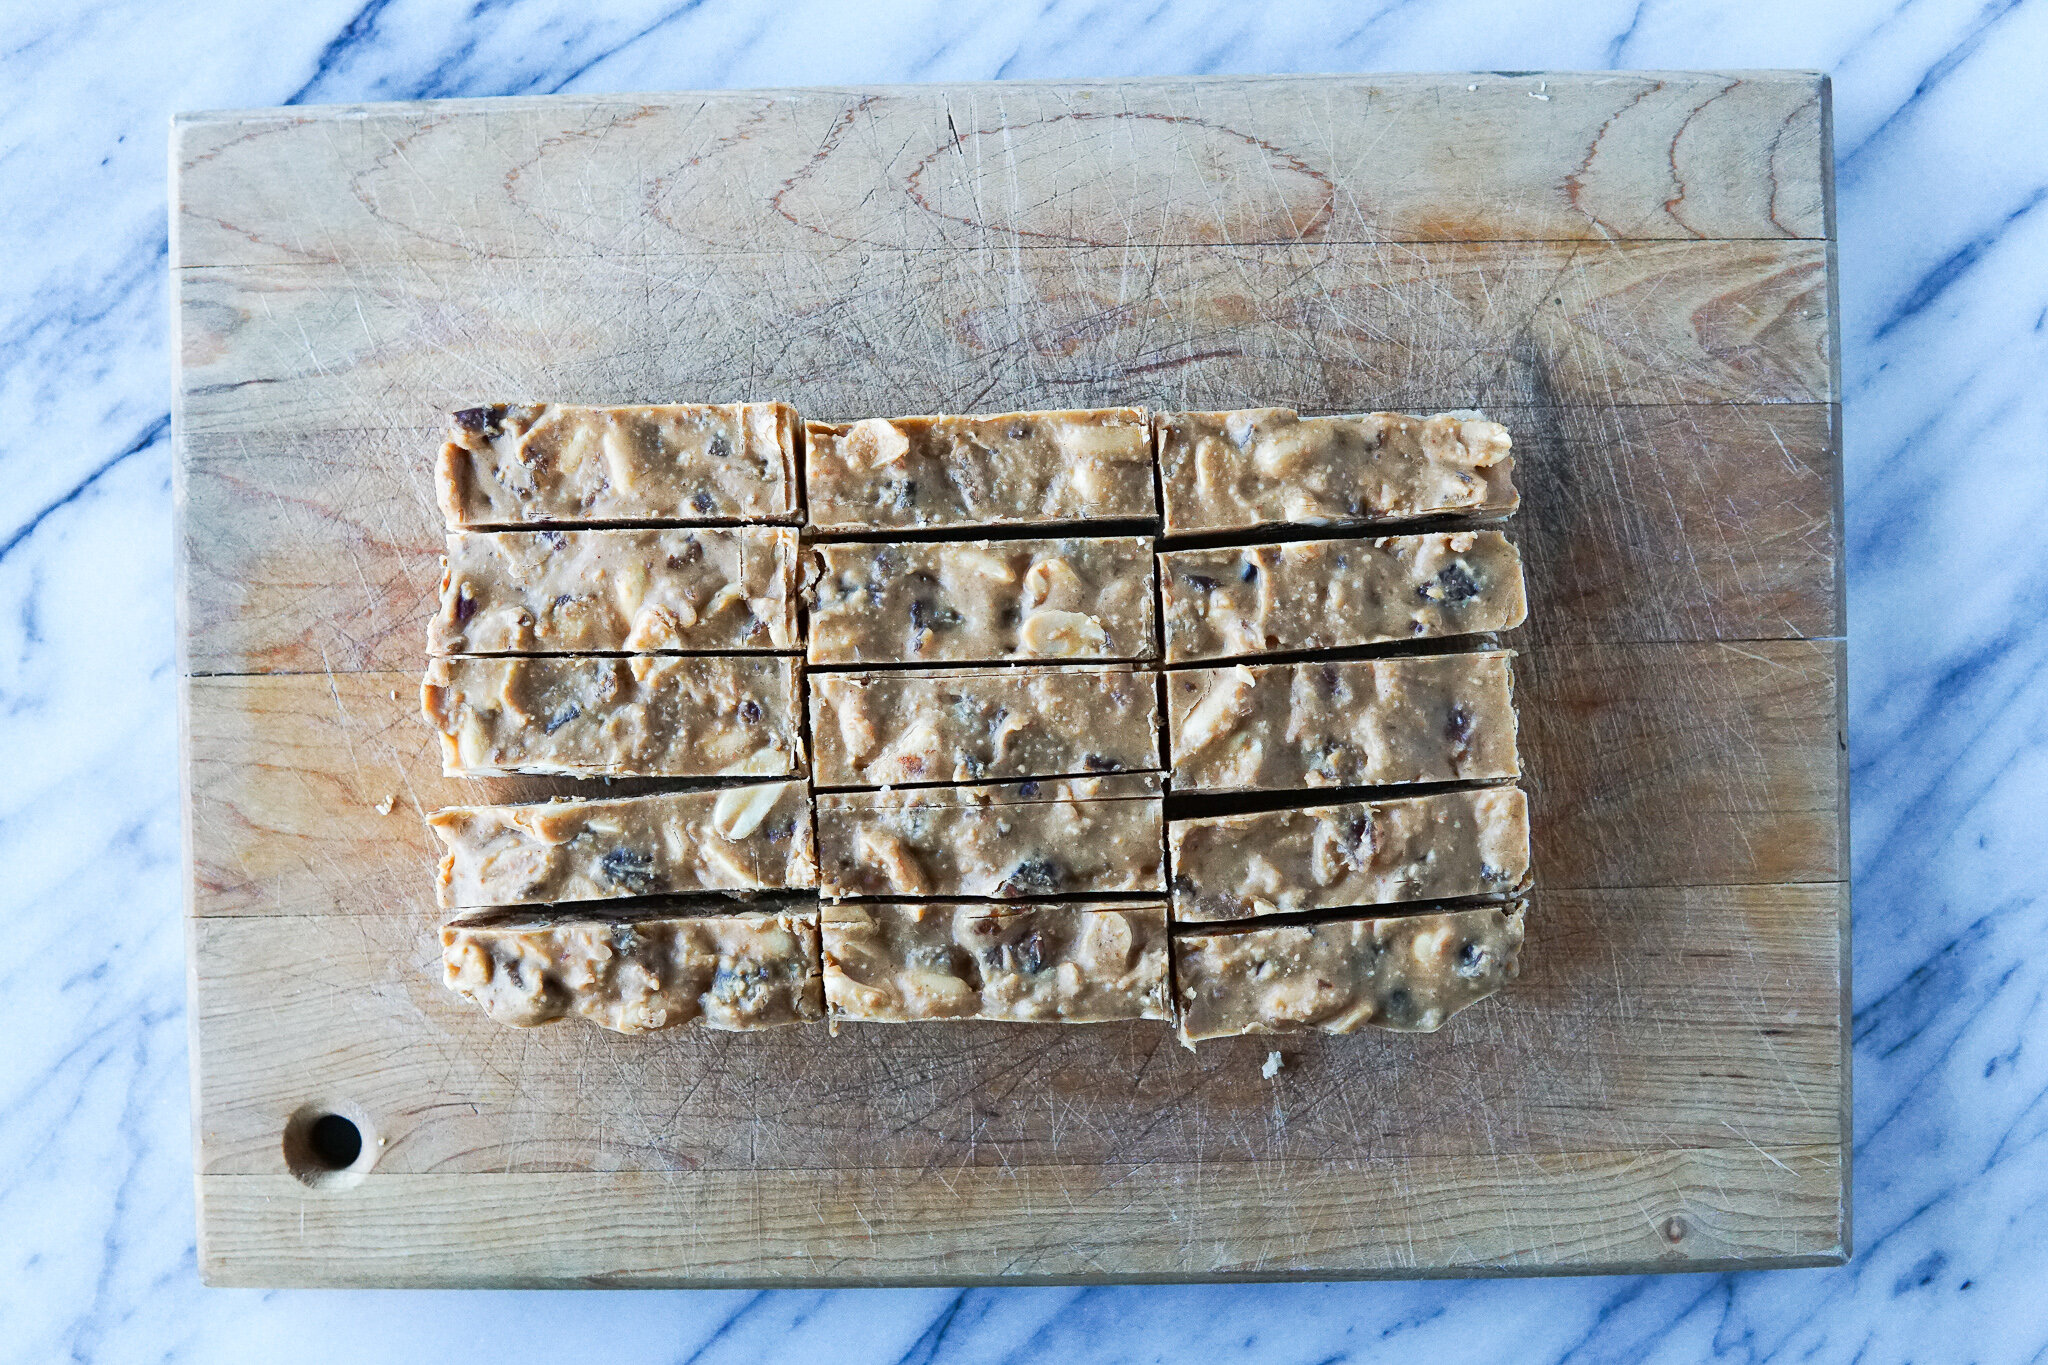 Once they have chilled, cut them into bars (or squares or whatever you want!)